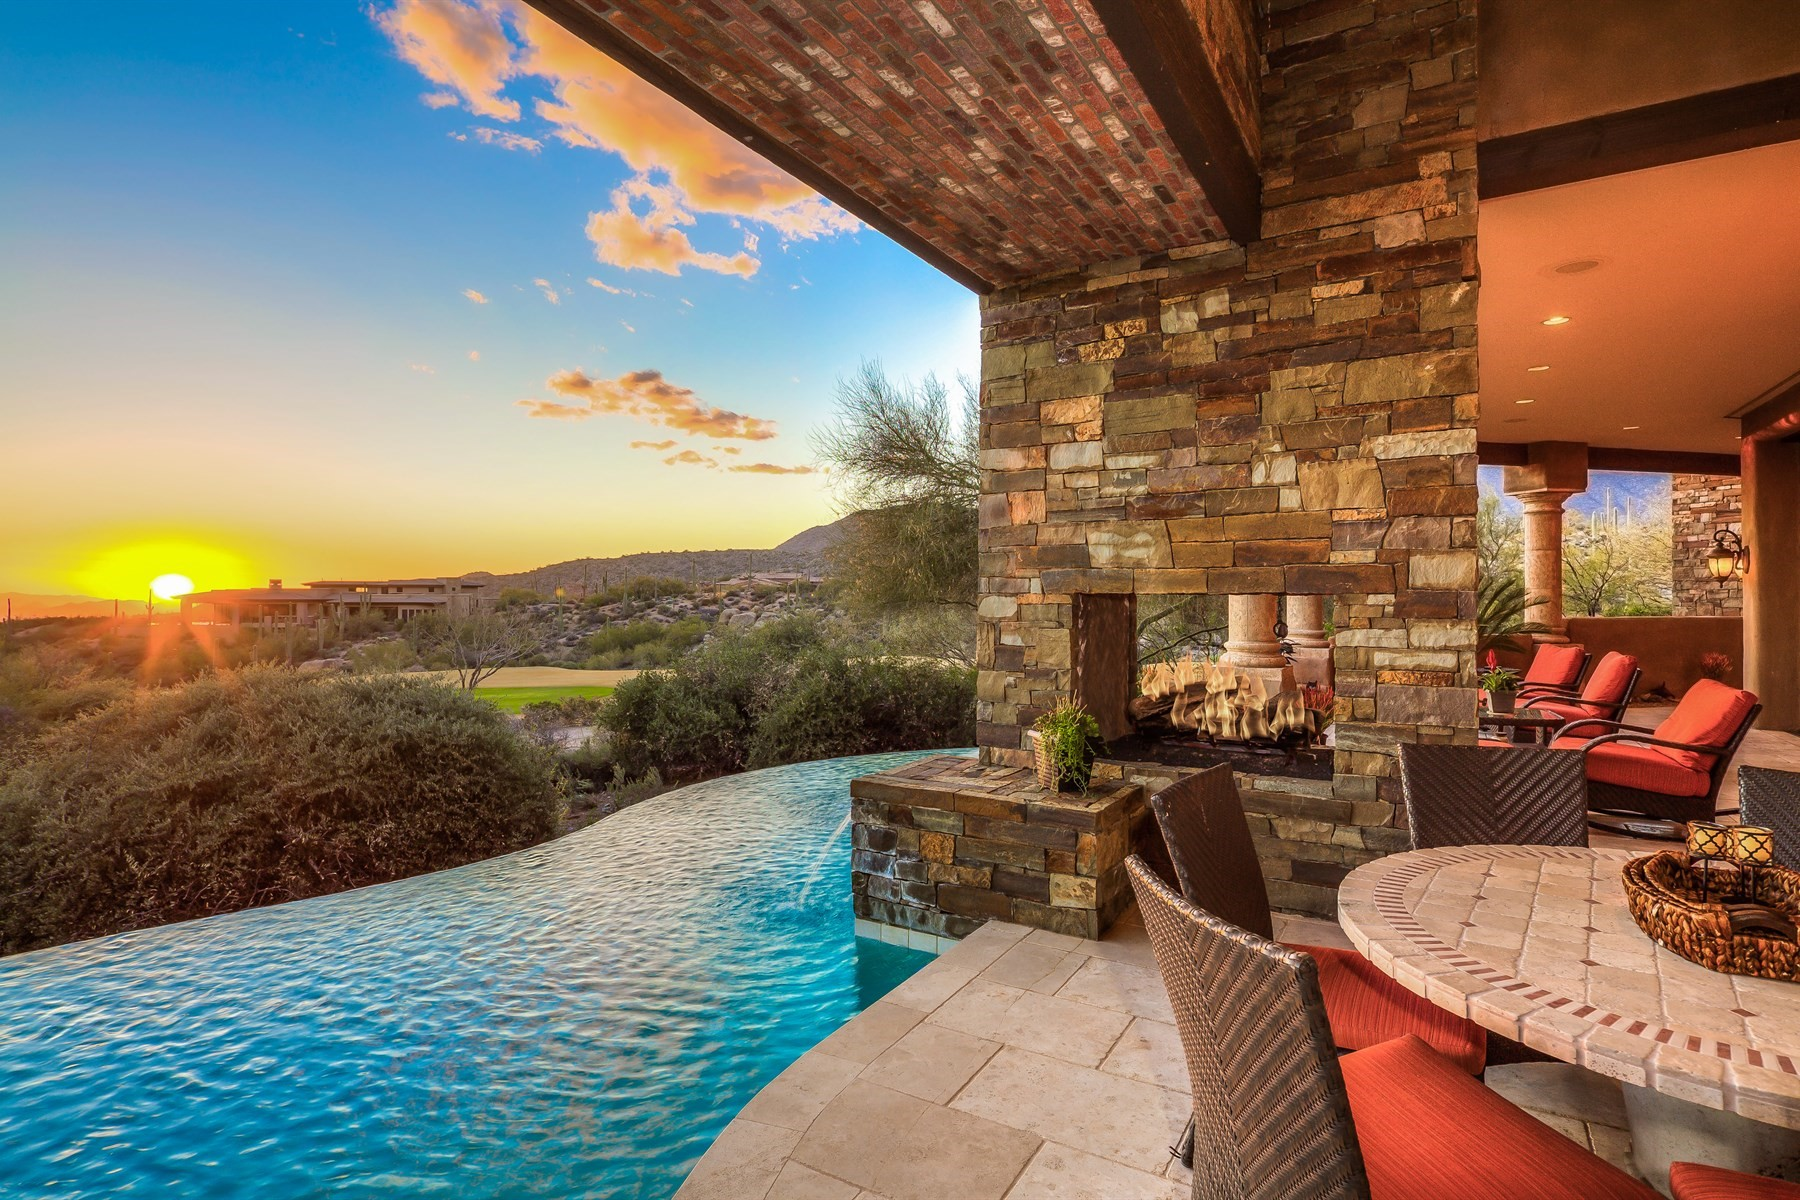 Single Family Home for Sale at Grand Single Level Courtyard Estate in Desert Mountain 41124 N 97th Street, Scottsdale, Arizona, 85262 United States